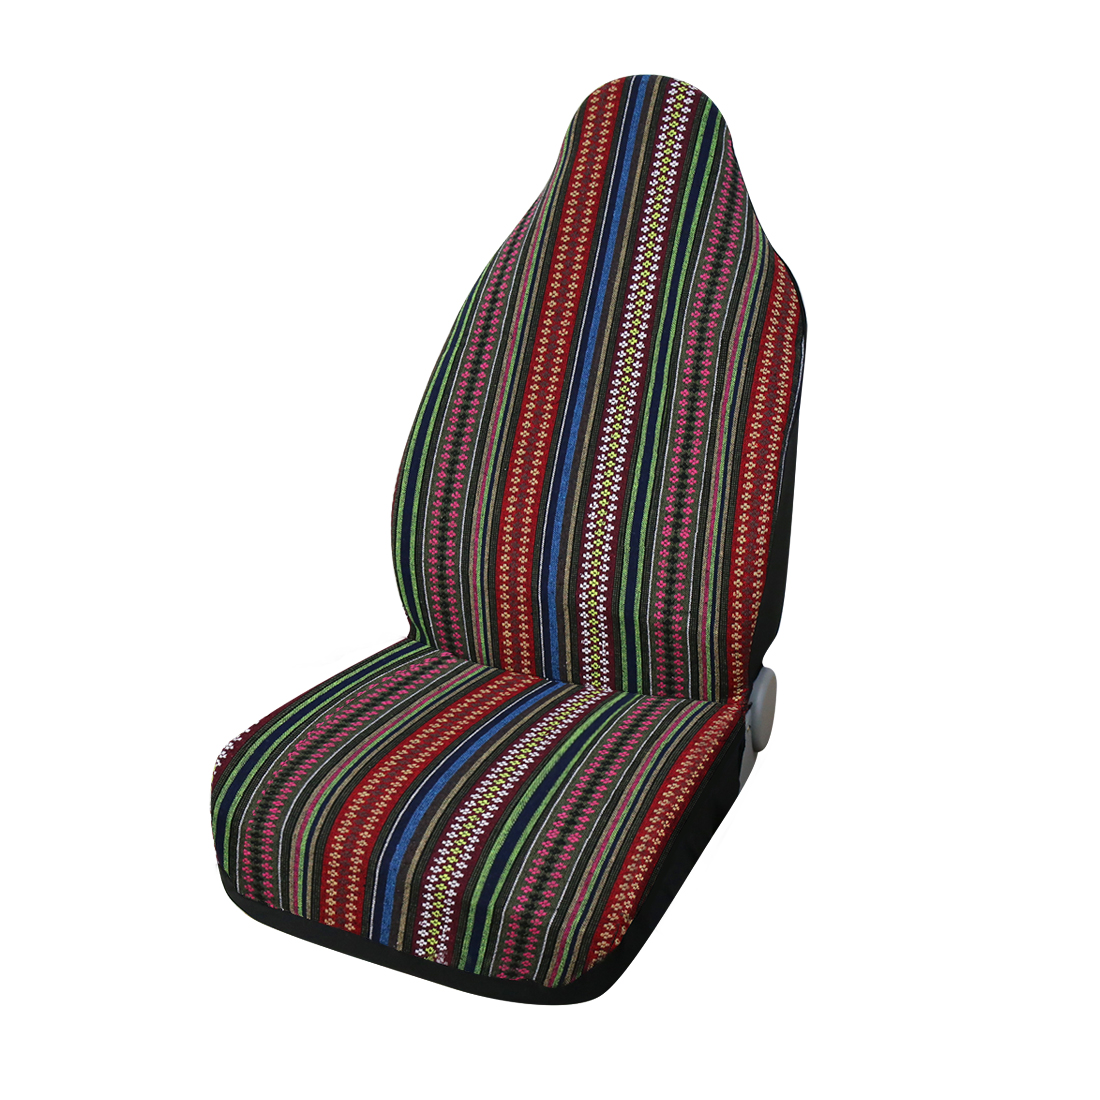 Universal Baja Blanket Durable Bucket Seat Cover for Car SUV Automotive